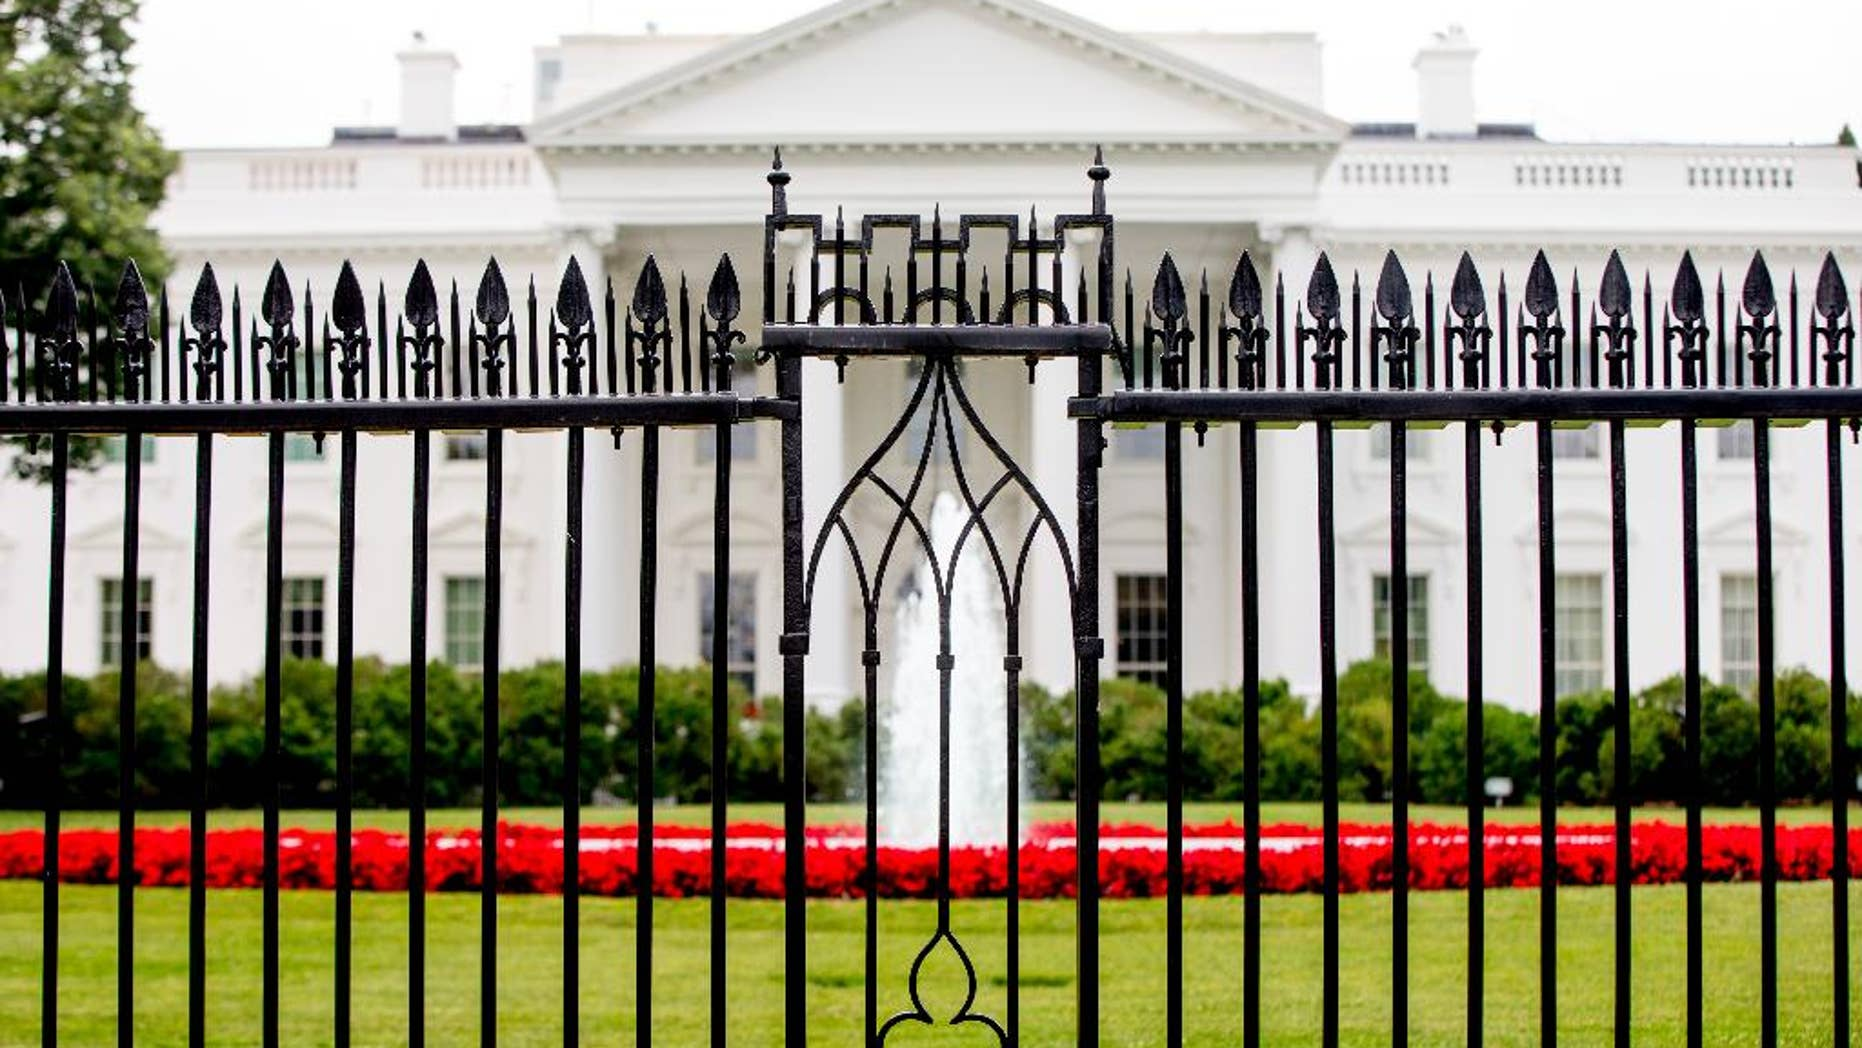 June 16, 2016: The White House is visible through the fence at the North Lawn in Washington.